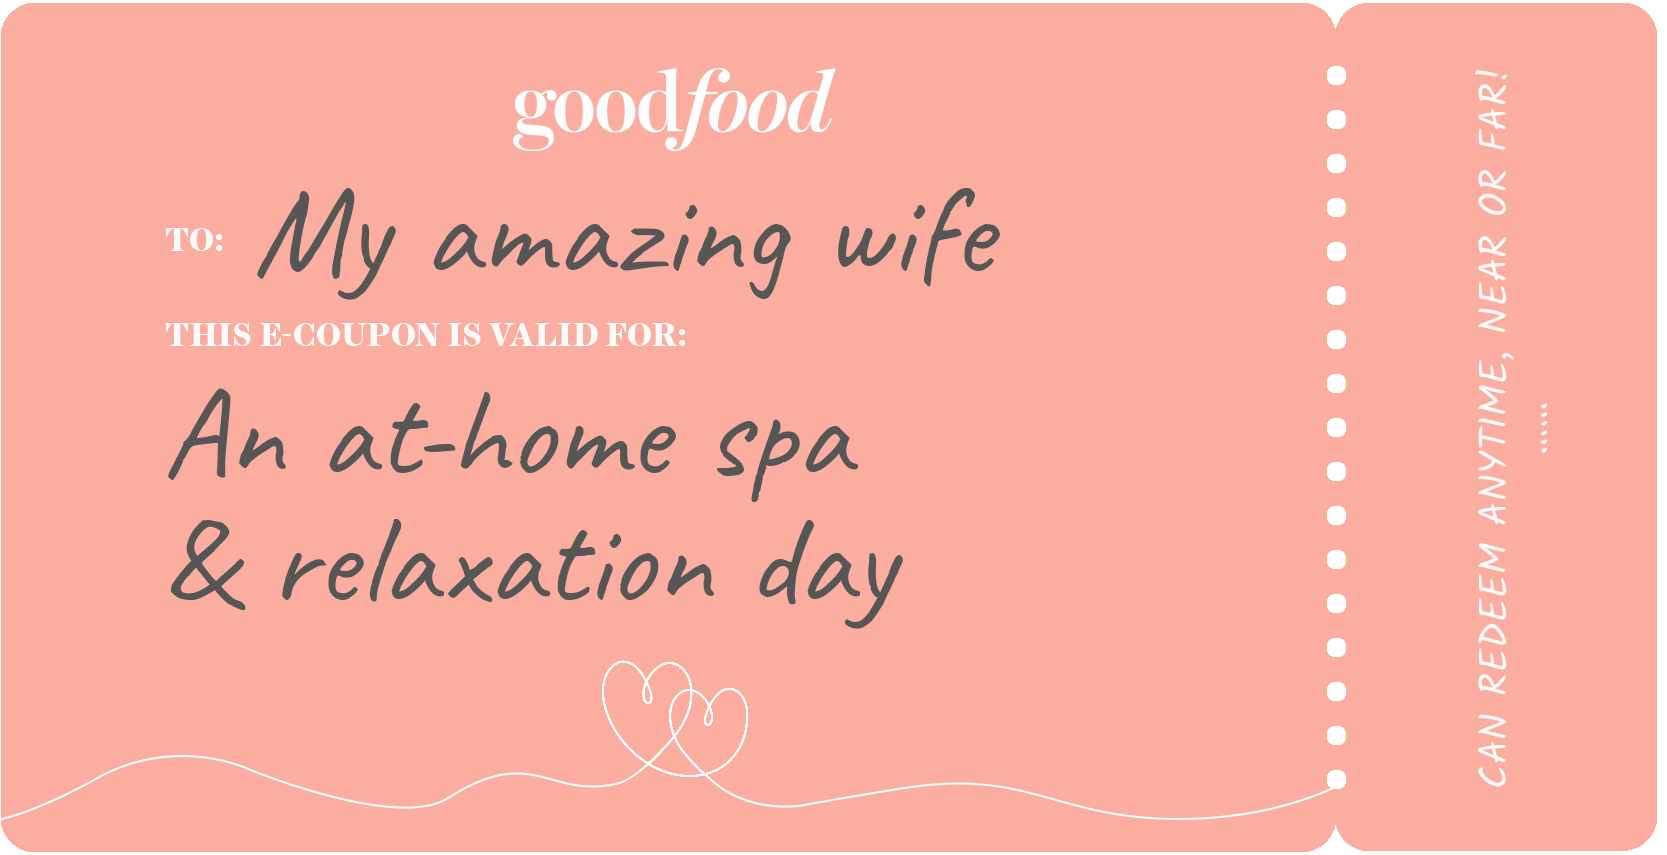 Coupon example, relaxation day